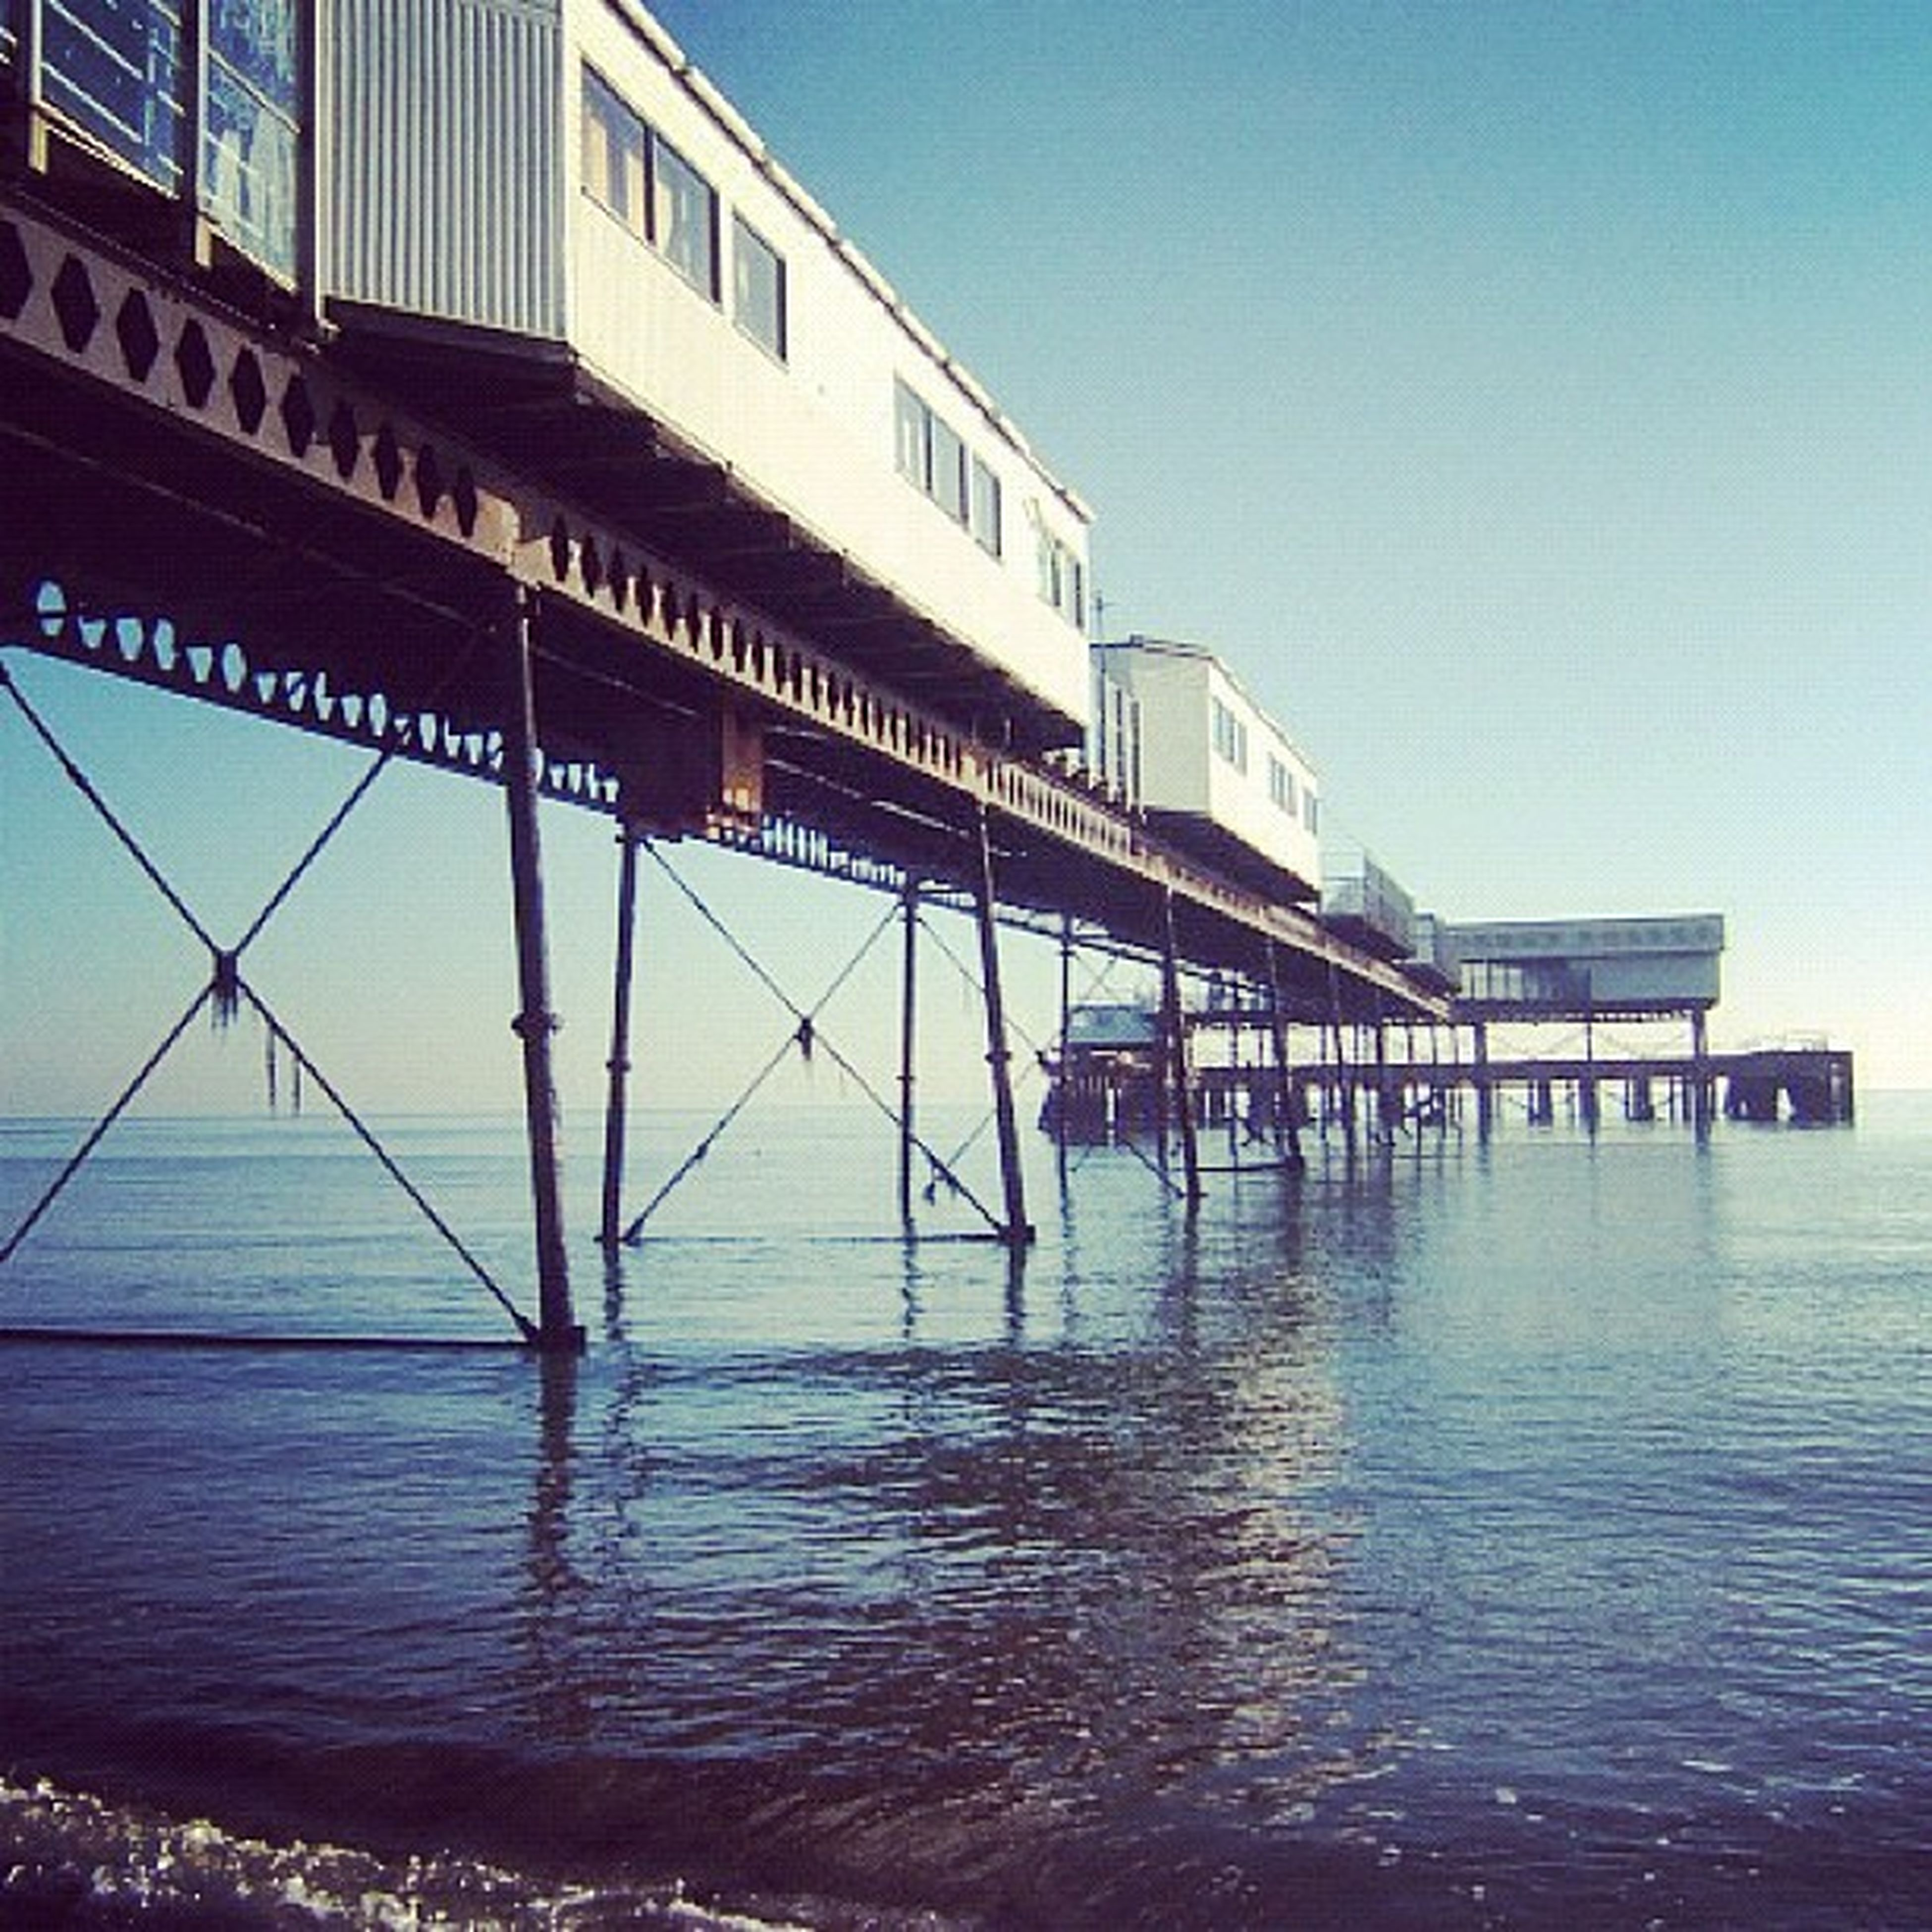 built structure, water, architecture, clear sky, sea, waterfront, blue, building exterior, sky, reflection, day, pier, rippled, low angle view, copy space, horizon over water, outdoors, no people, connection, nature